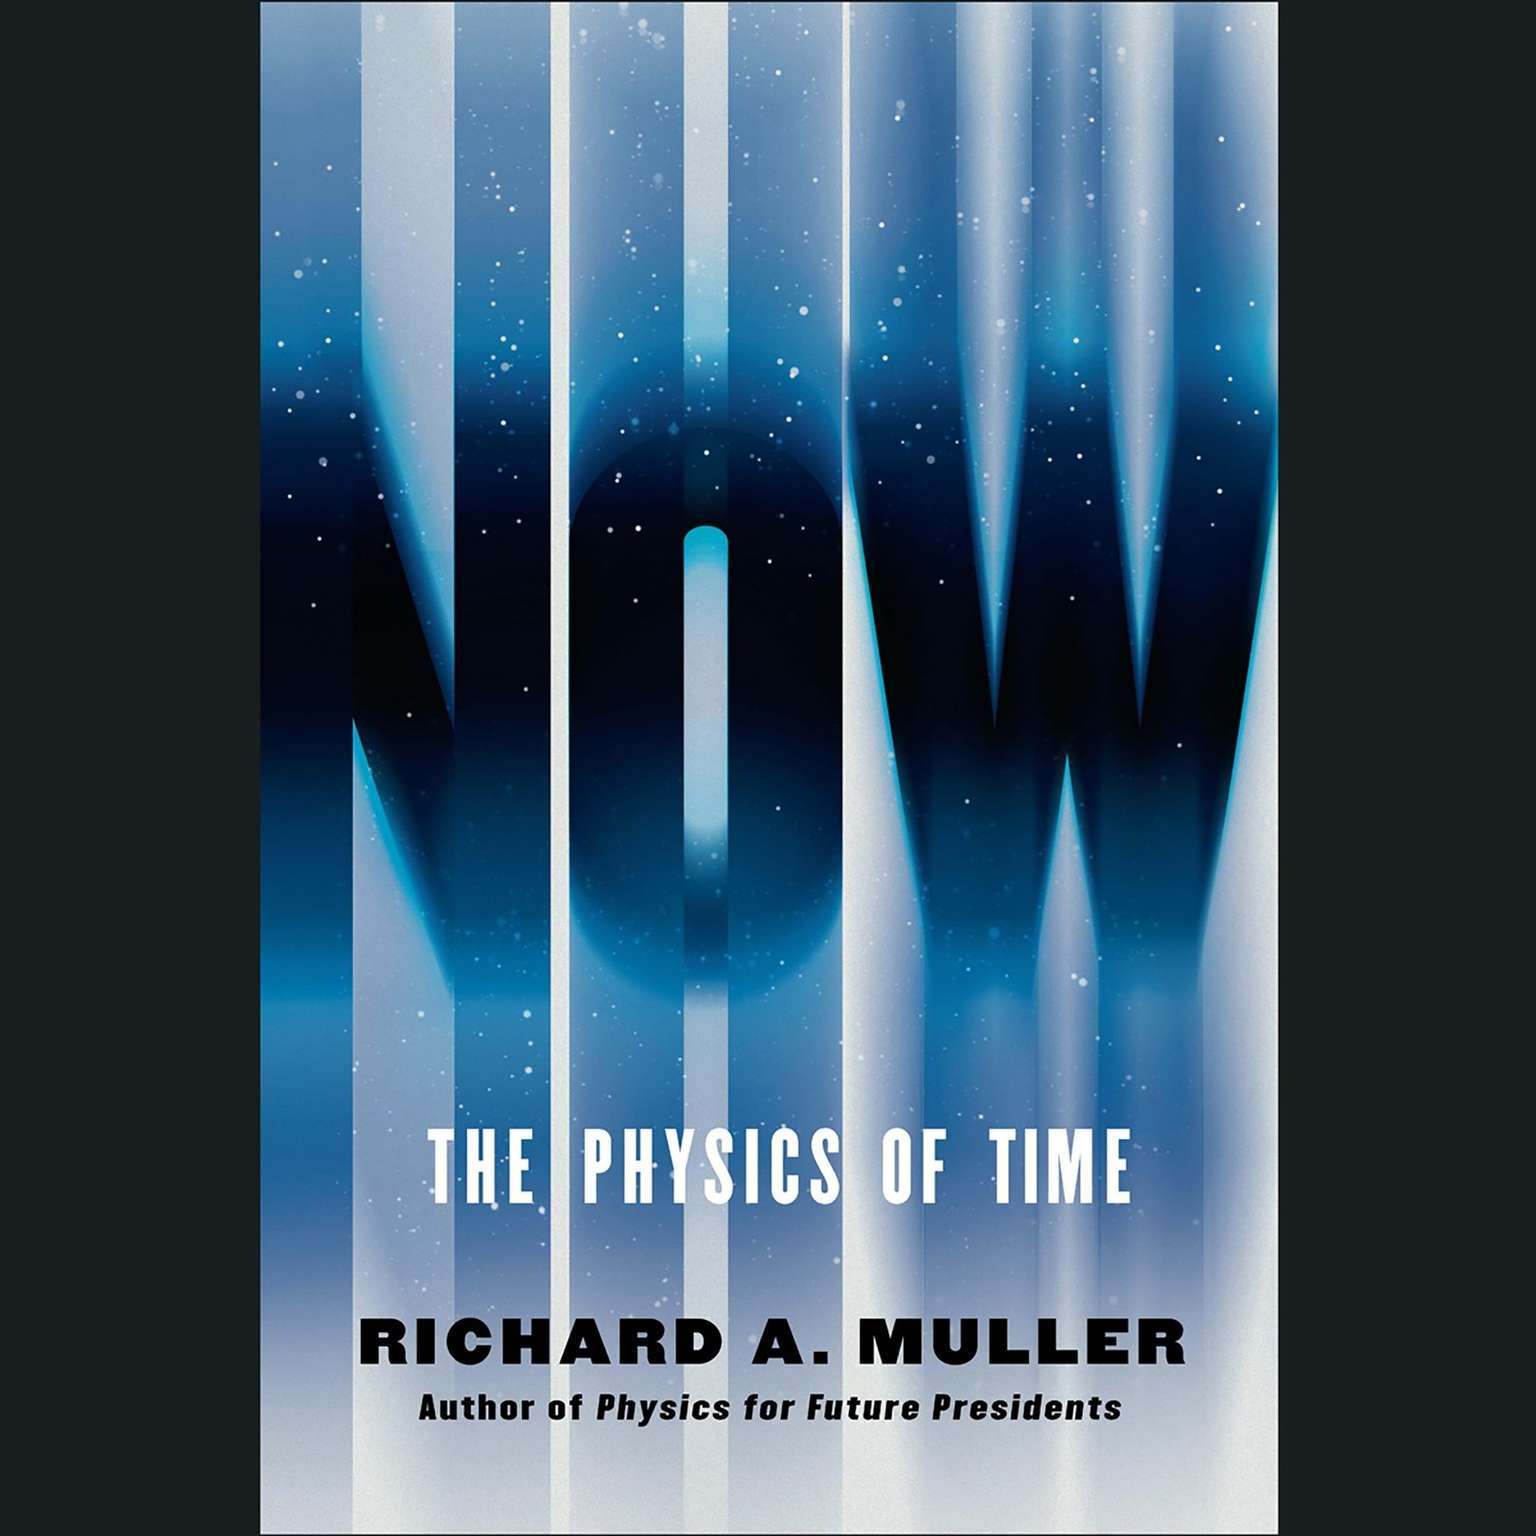 Printable Now: The Physics of Time - and the Ephemeral Moment that Einstein Could Not Explain Audiobook Cover Art